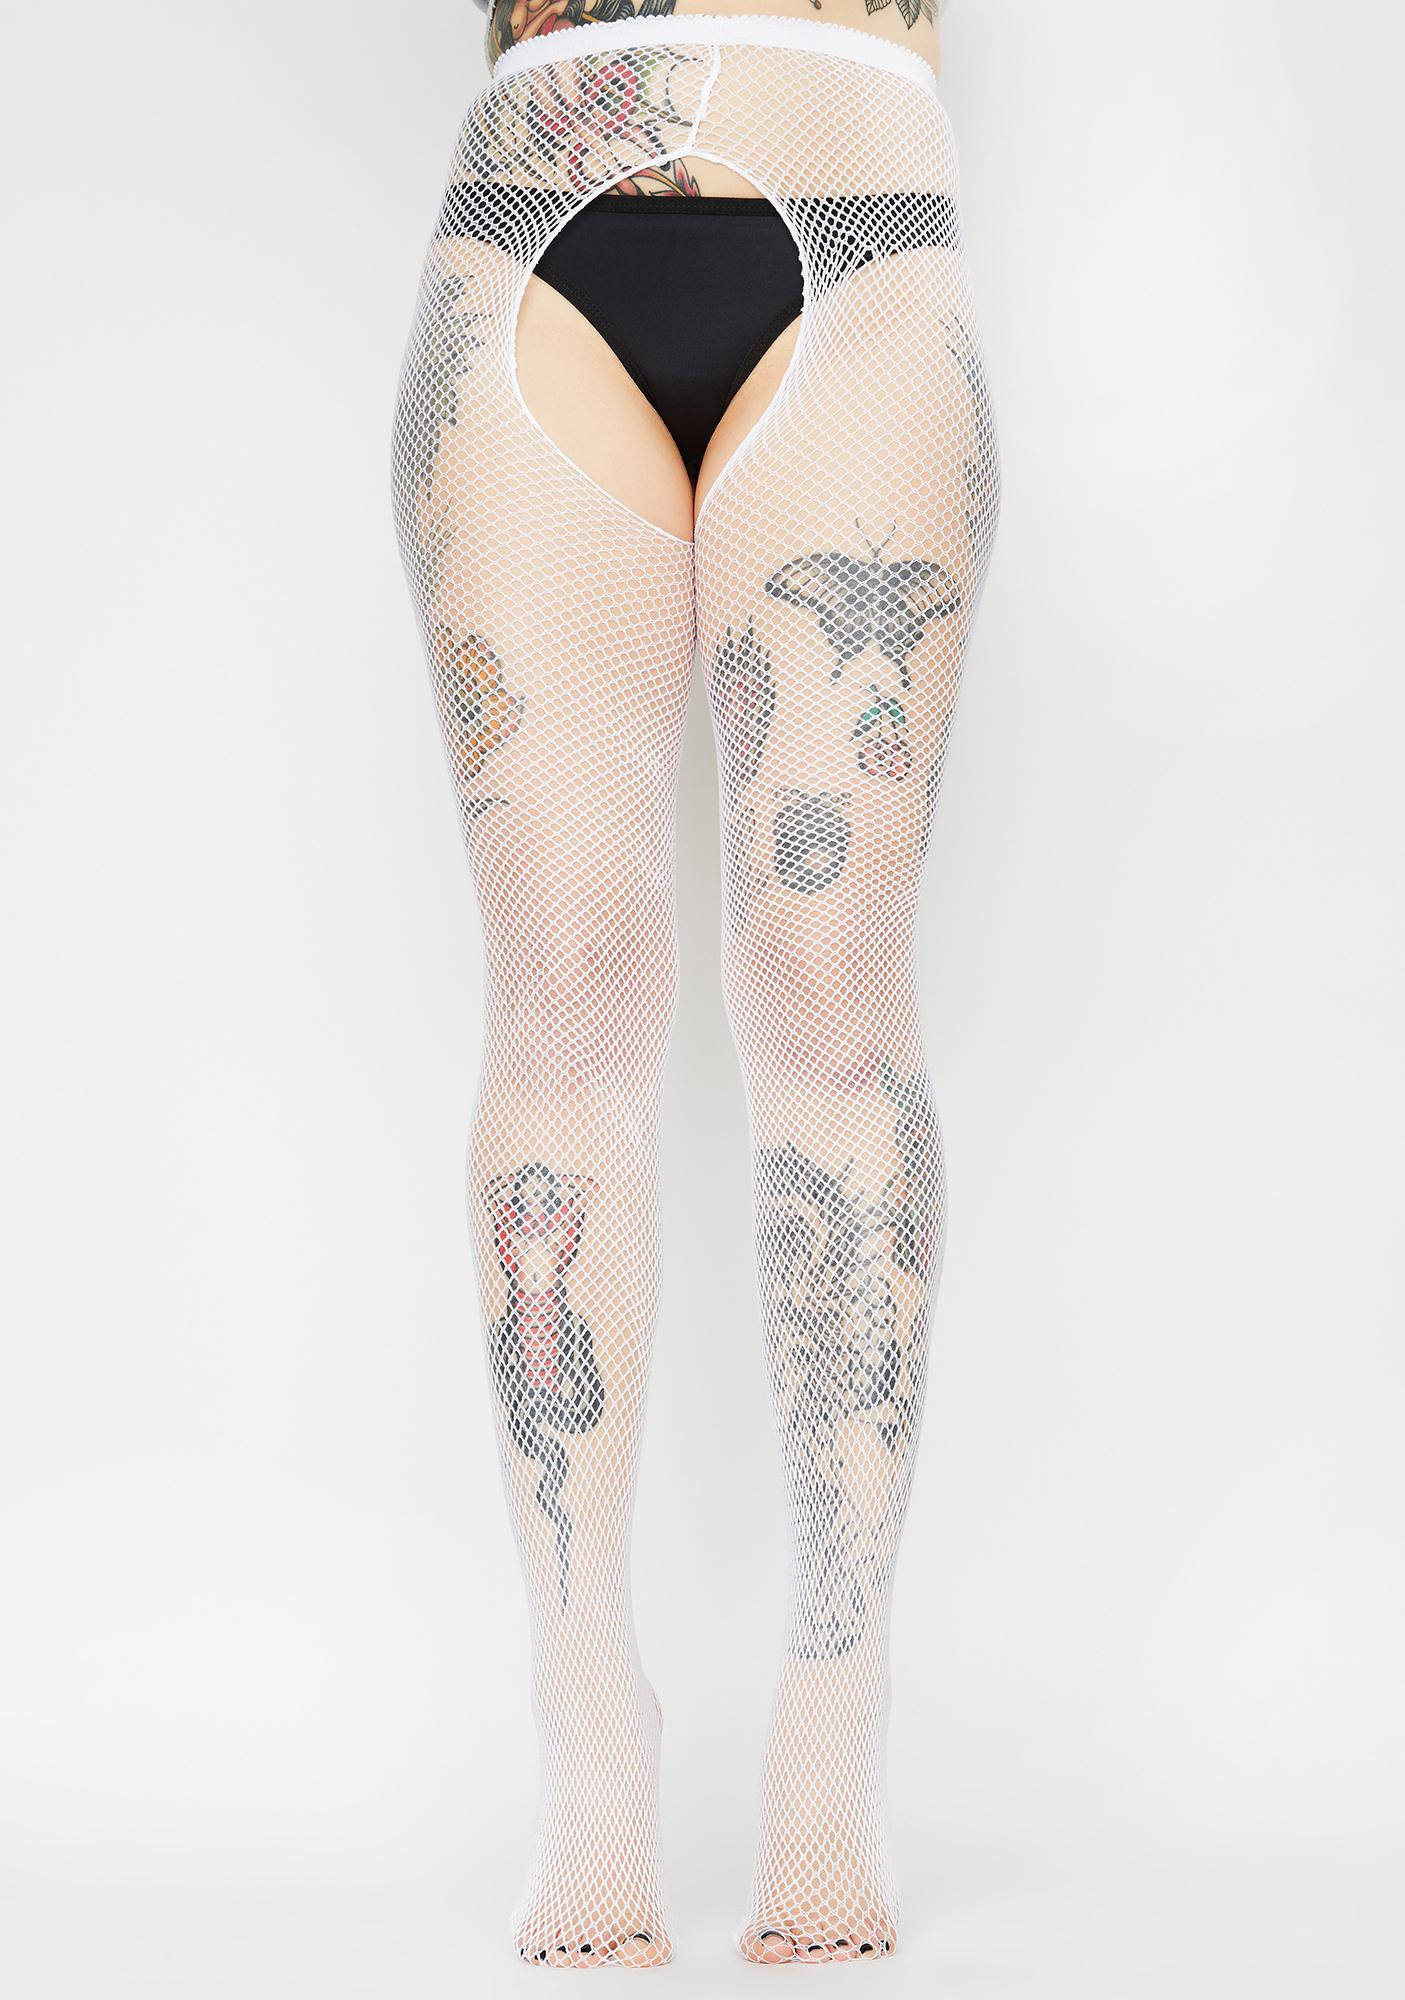 Take It Easy Fishnet Crotchless Tights